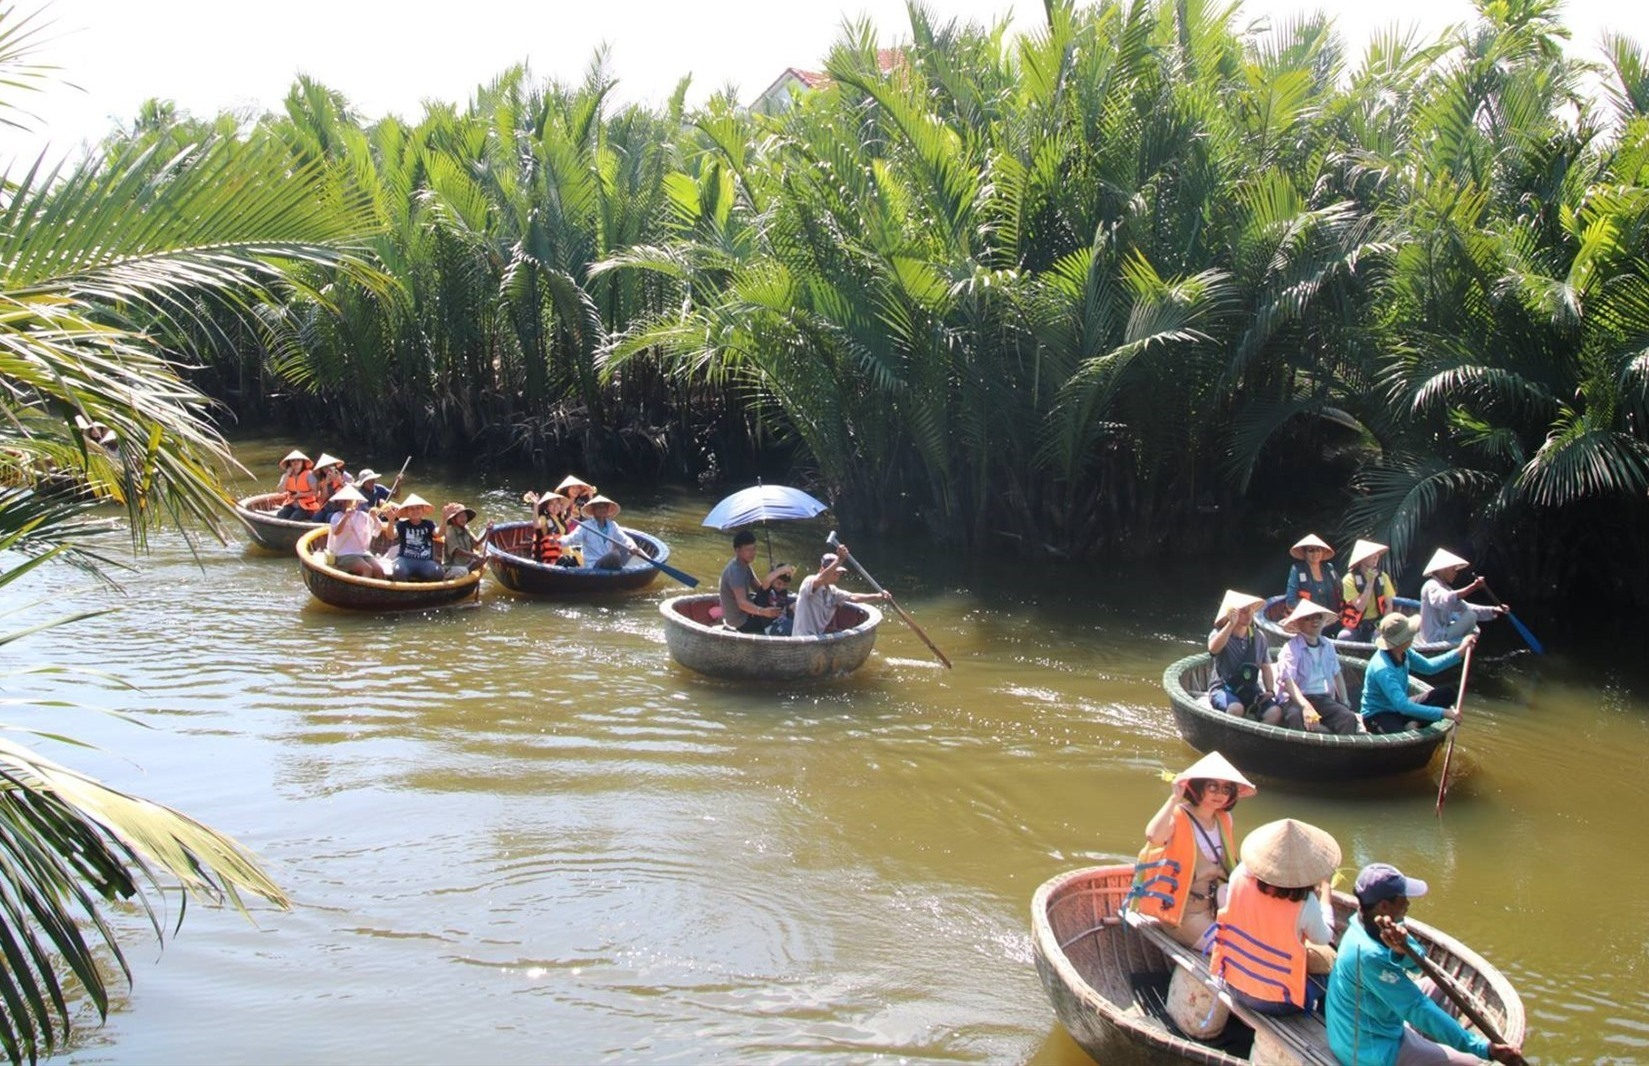 Earlier, Bay Mau nipa palm forest attracts from 3,000 to 4,000 visitors a day.